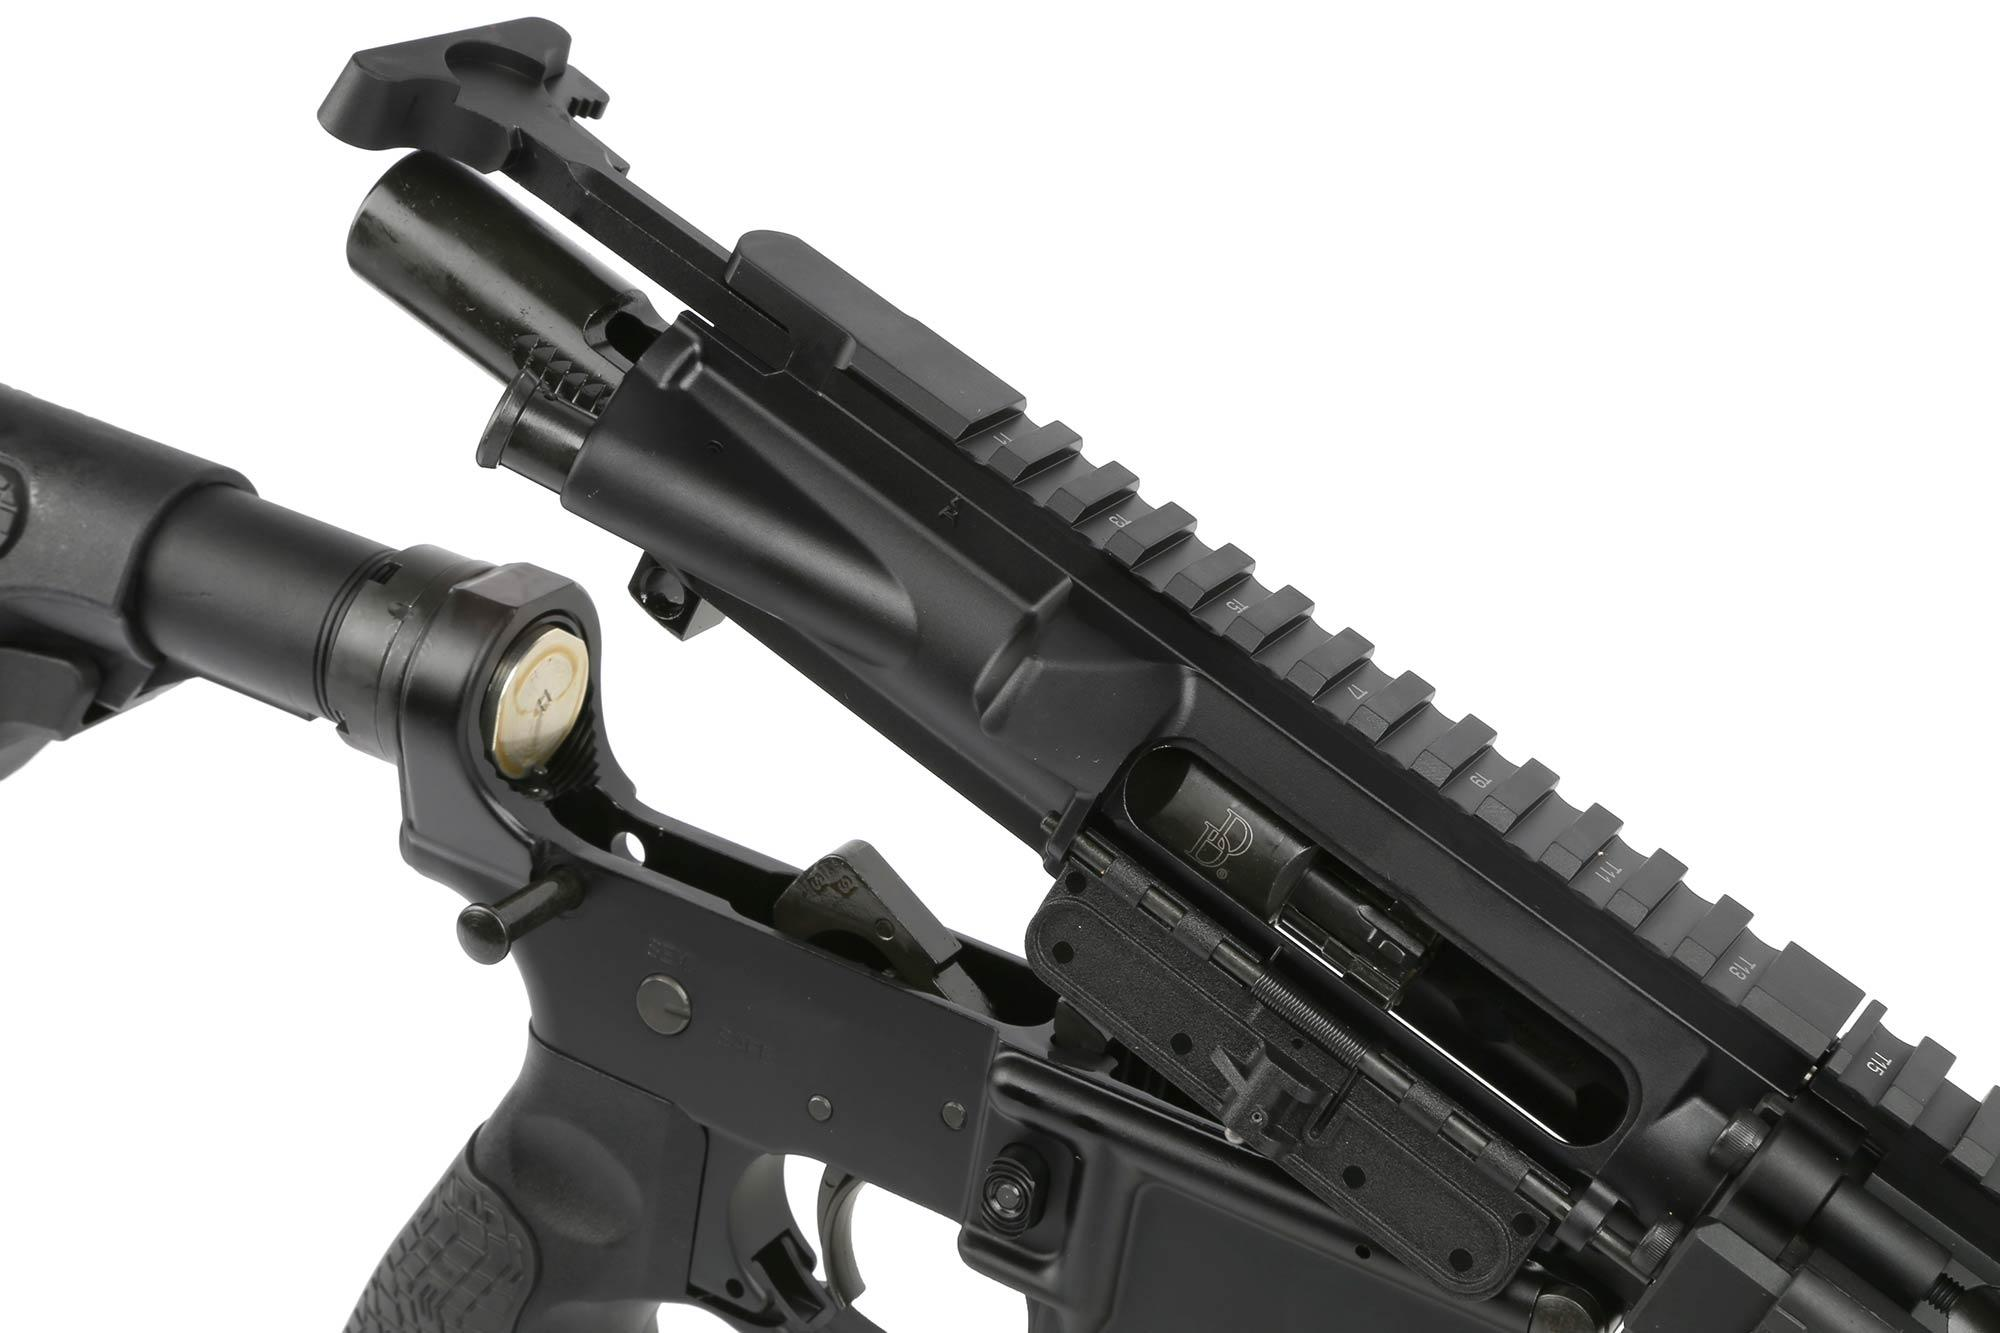 The Daniel Defense short barrel Rifle MK18 AR15 uses a magnetic particle inspected Mil-Spec bolt carrier group